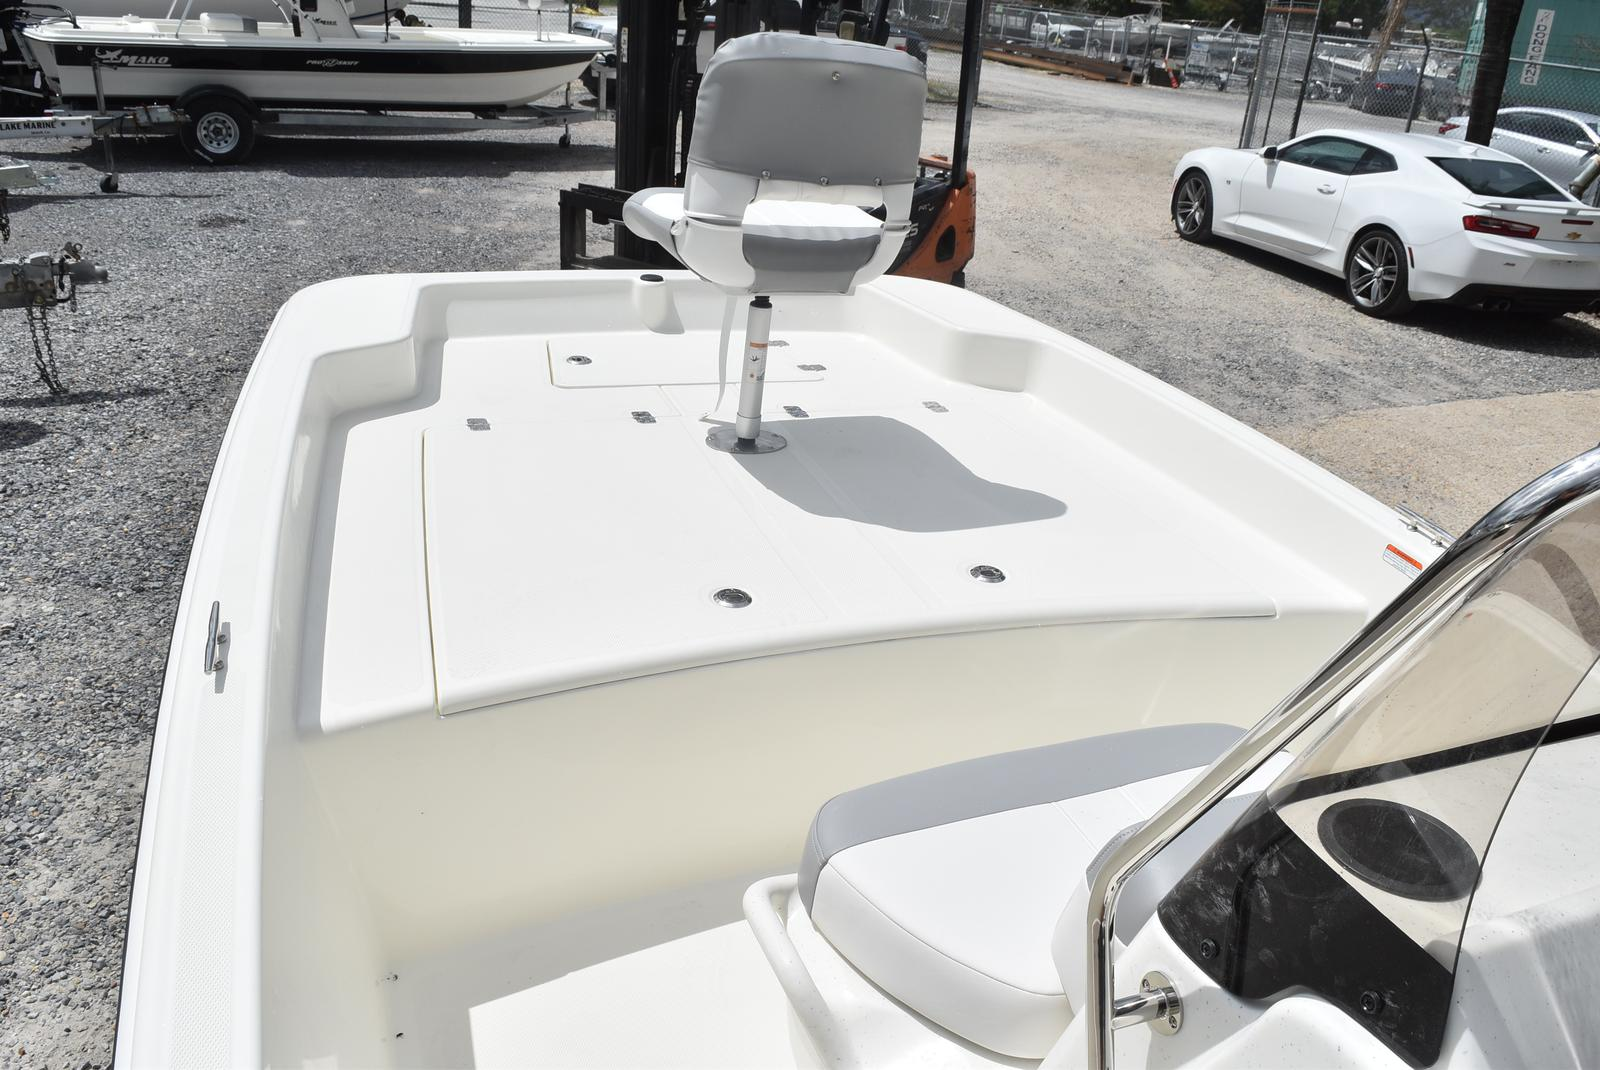 2020 Mako boat for sale, model of the boat is Pro Skiff 17, 75 ELPT & Image # 397 of 702